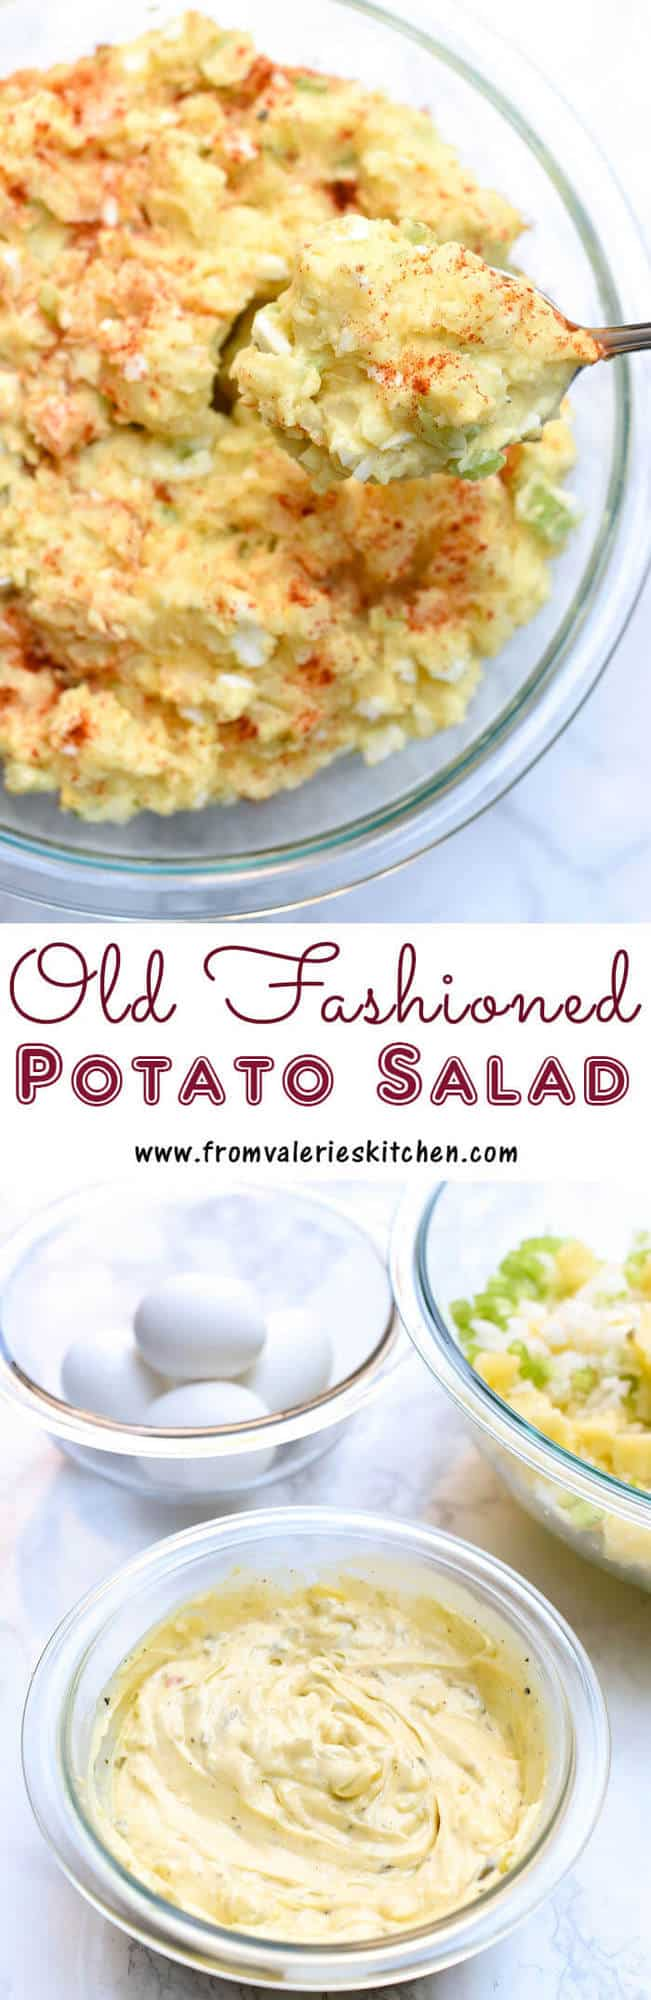 This Old Fashioned Potato Salad recipe is a delicious, fail-proof version of the classic potluck dish. Get my tips for a fabulous result every time!